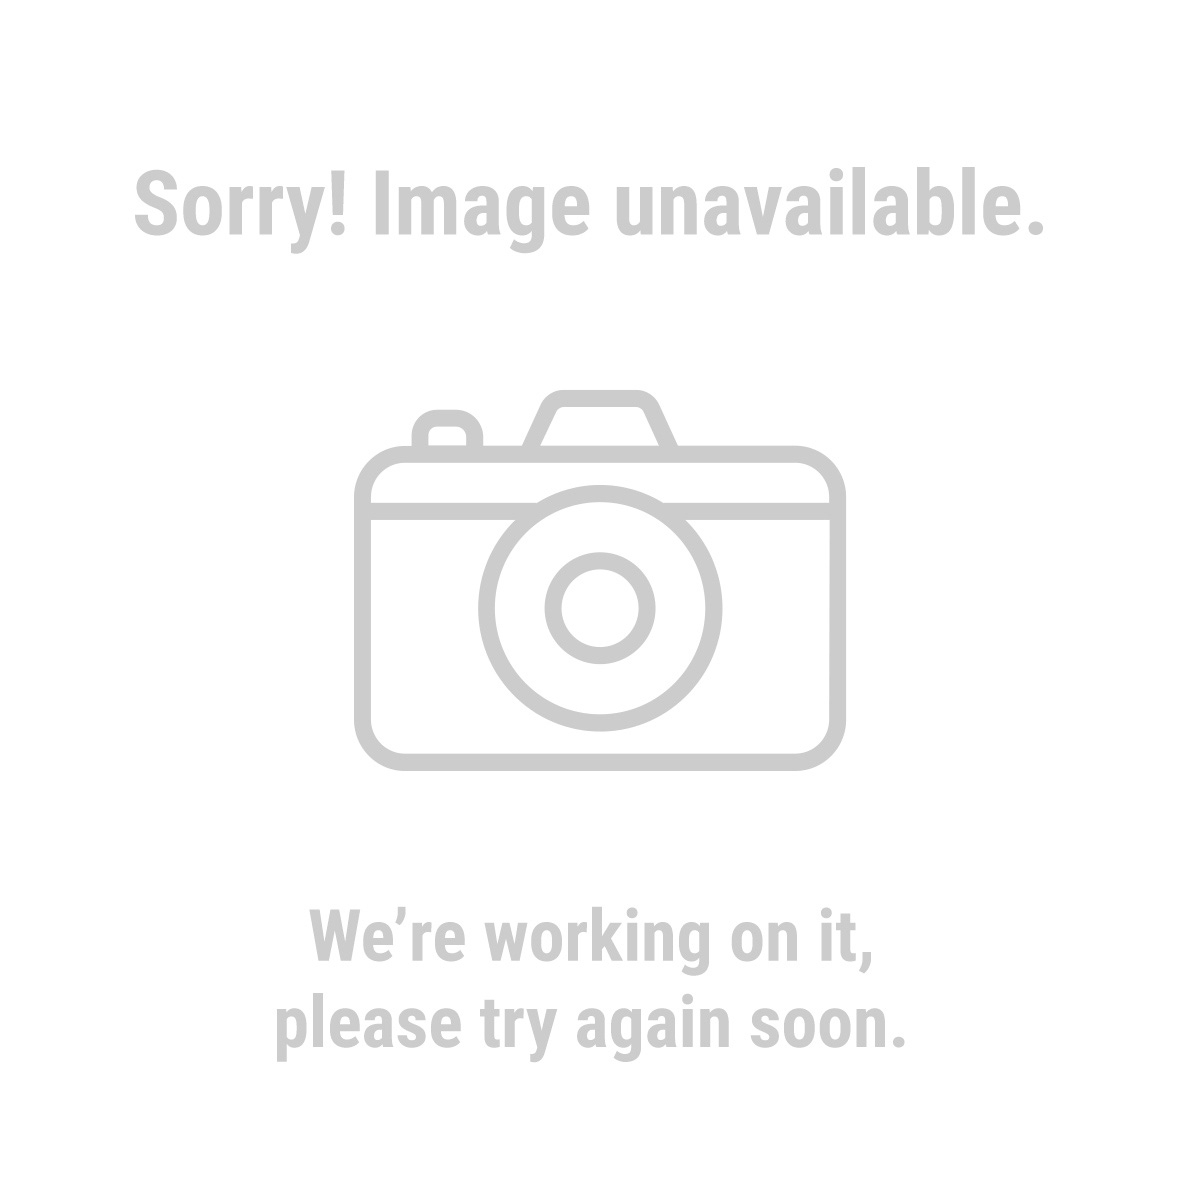 Voyager 61572 20 in. Stainless Steel Toolbox